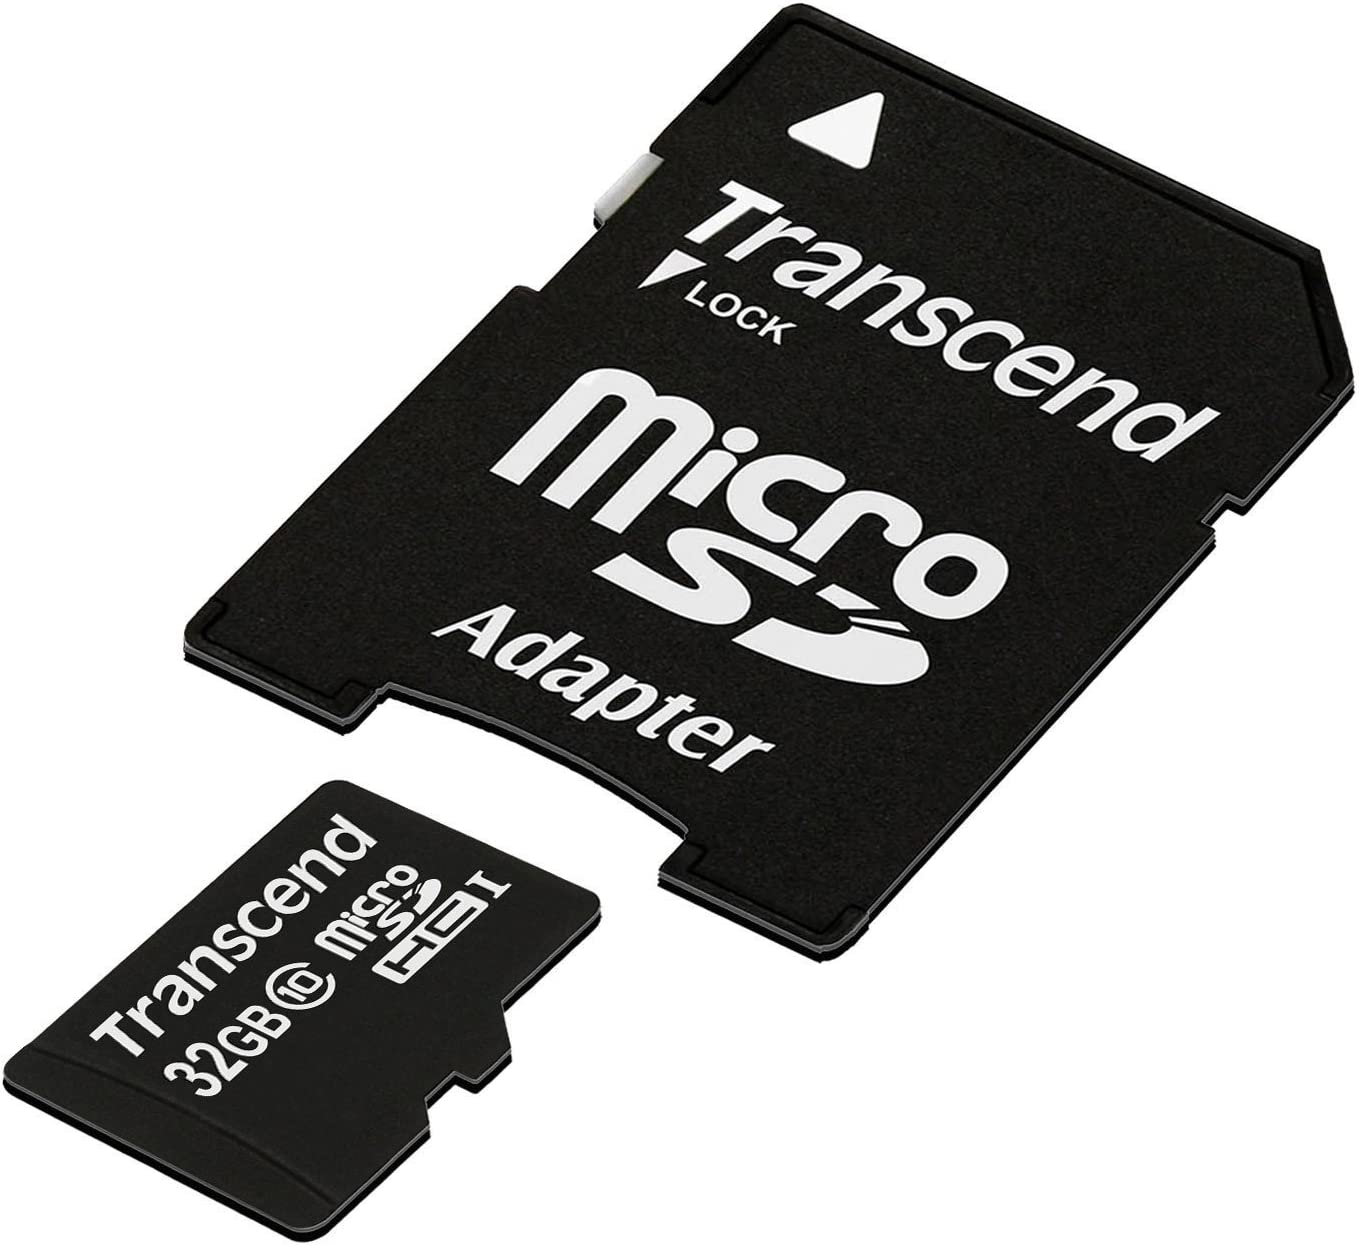 Transcend 32gb Microsdxc Sdhc Class 10 With Adapter Computer Zubehör